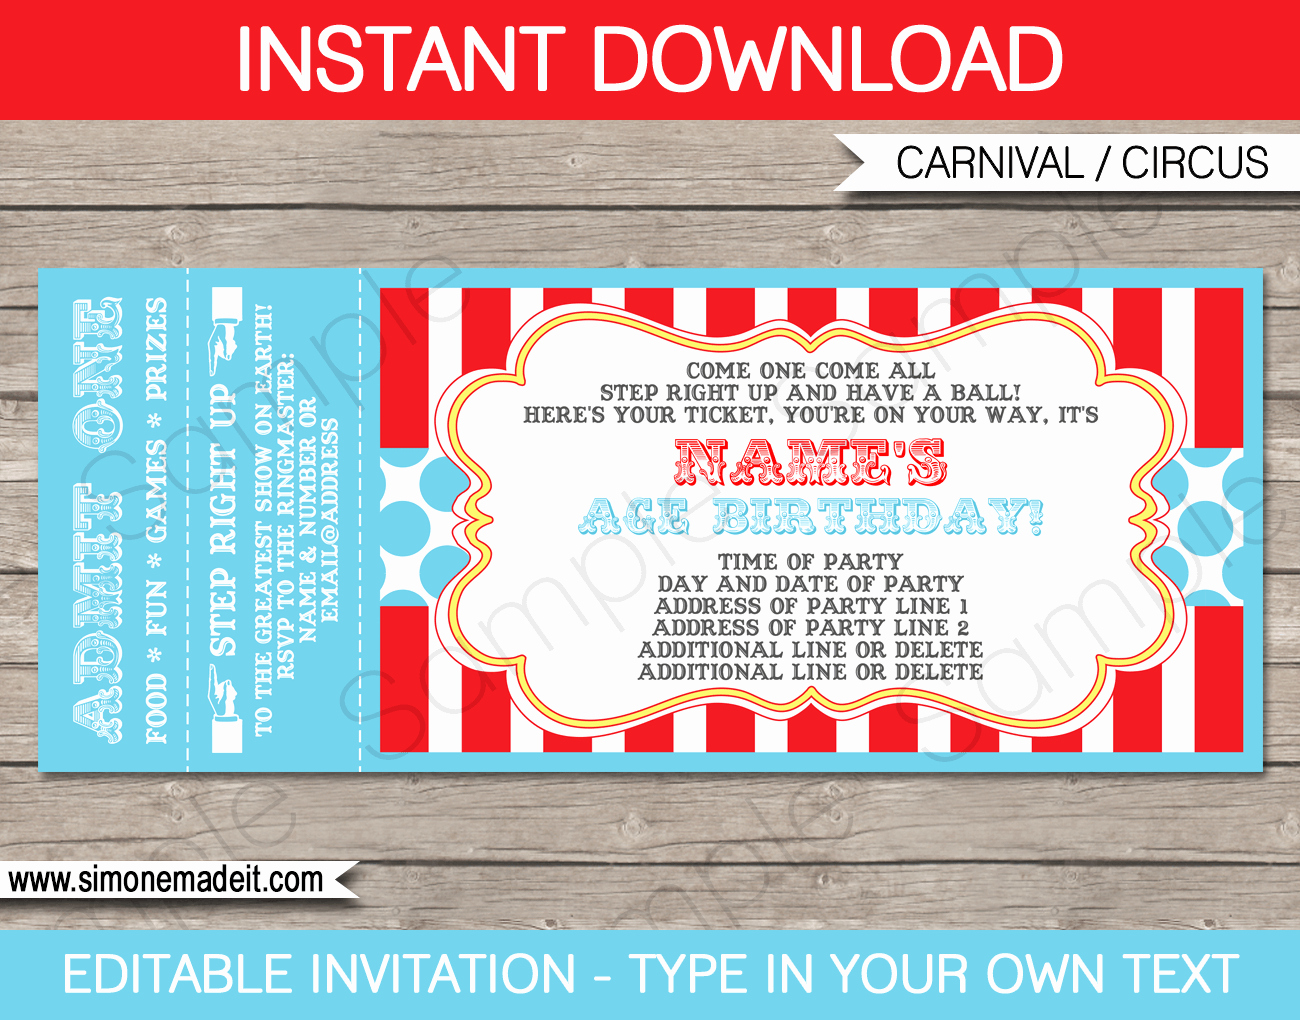 Carnival Ticket Invitation Beautiful Circus Party Ticket Invitation Template